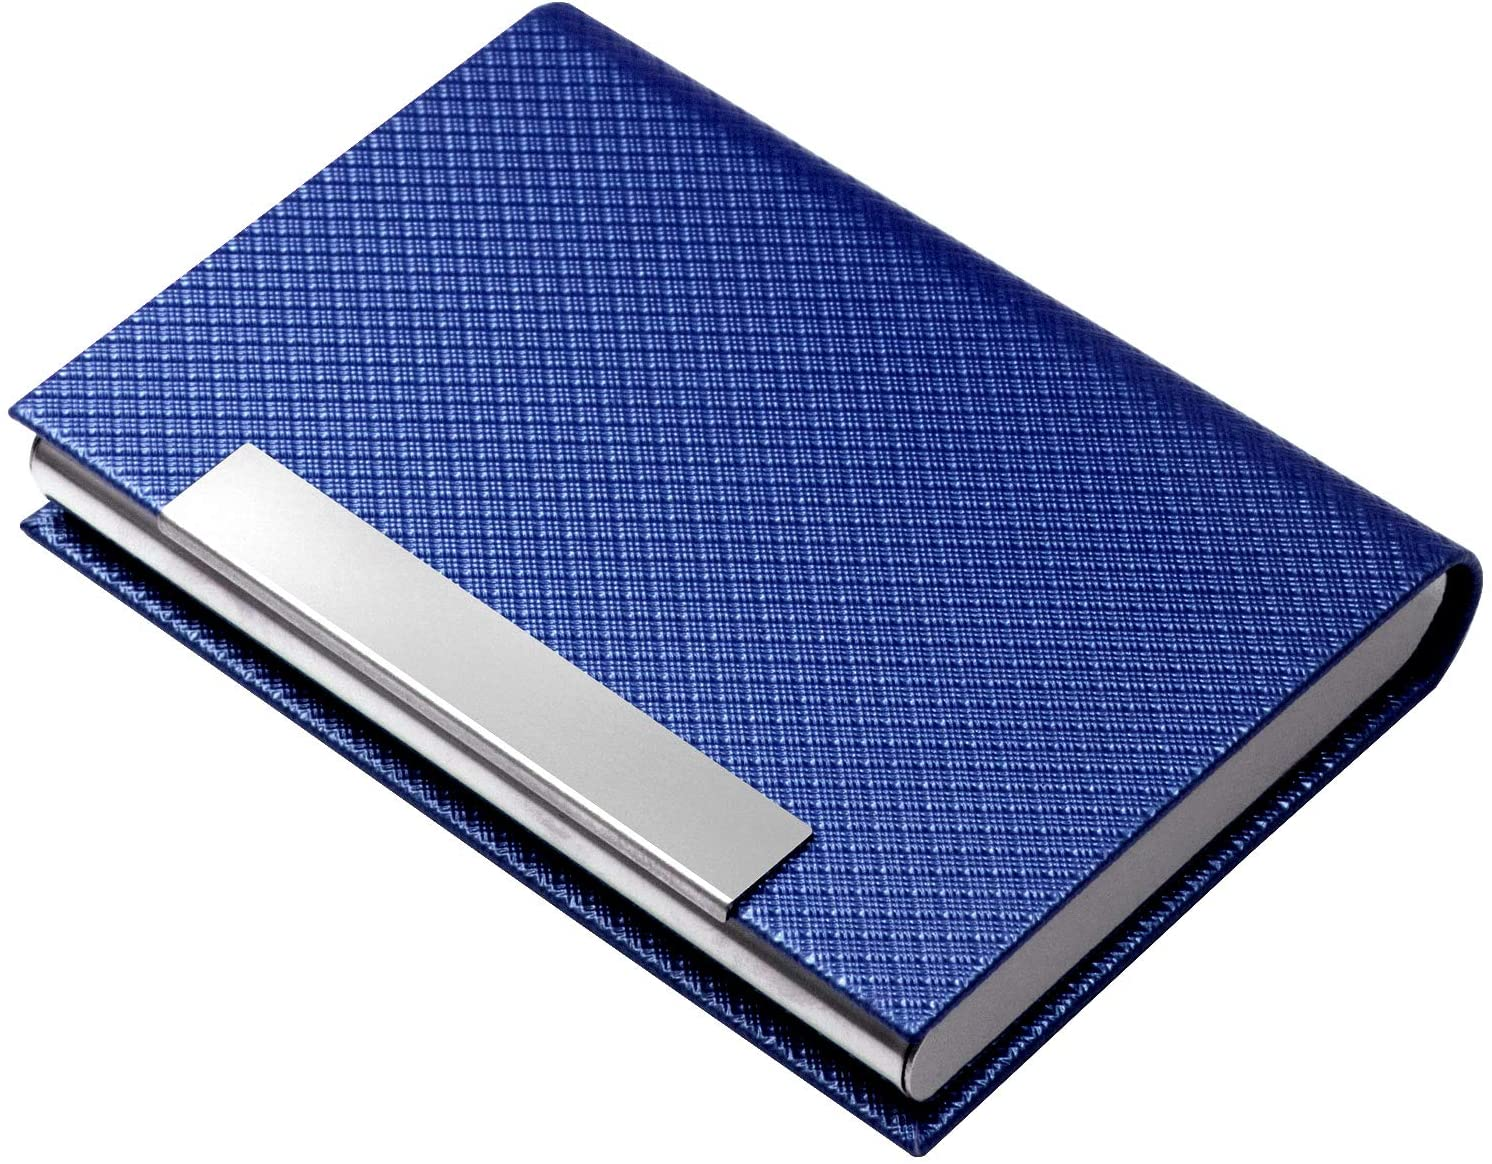 Business Card Holder, Business Card Case Luxury PU Leather & Stainless Steel Multi Card Case,Business Card Holder Wallet Credit Card ID Case/Holder for Men & Women. (T-Blue)…